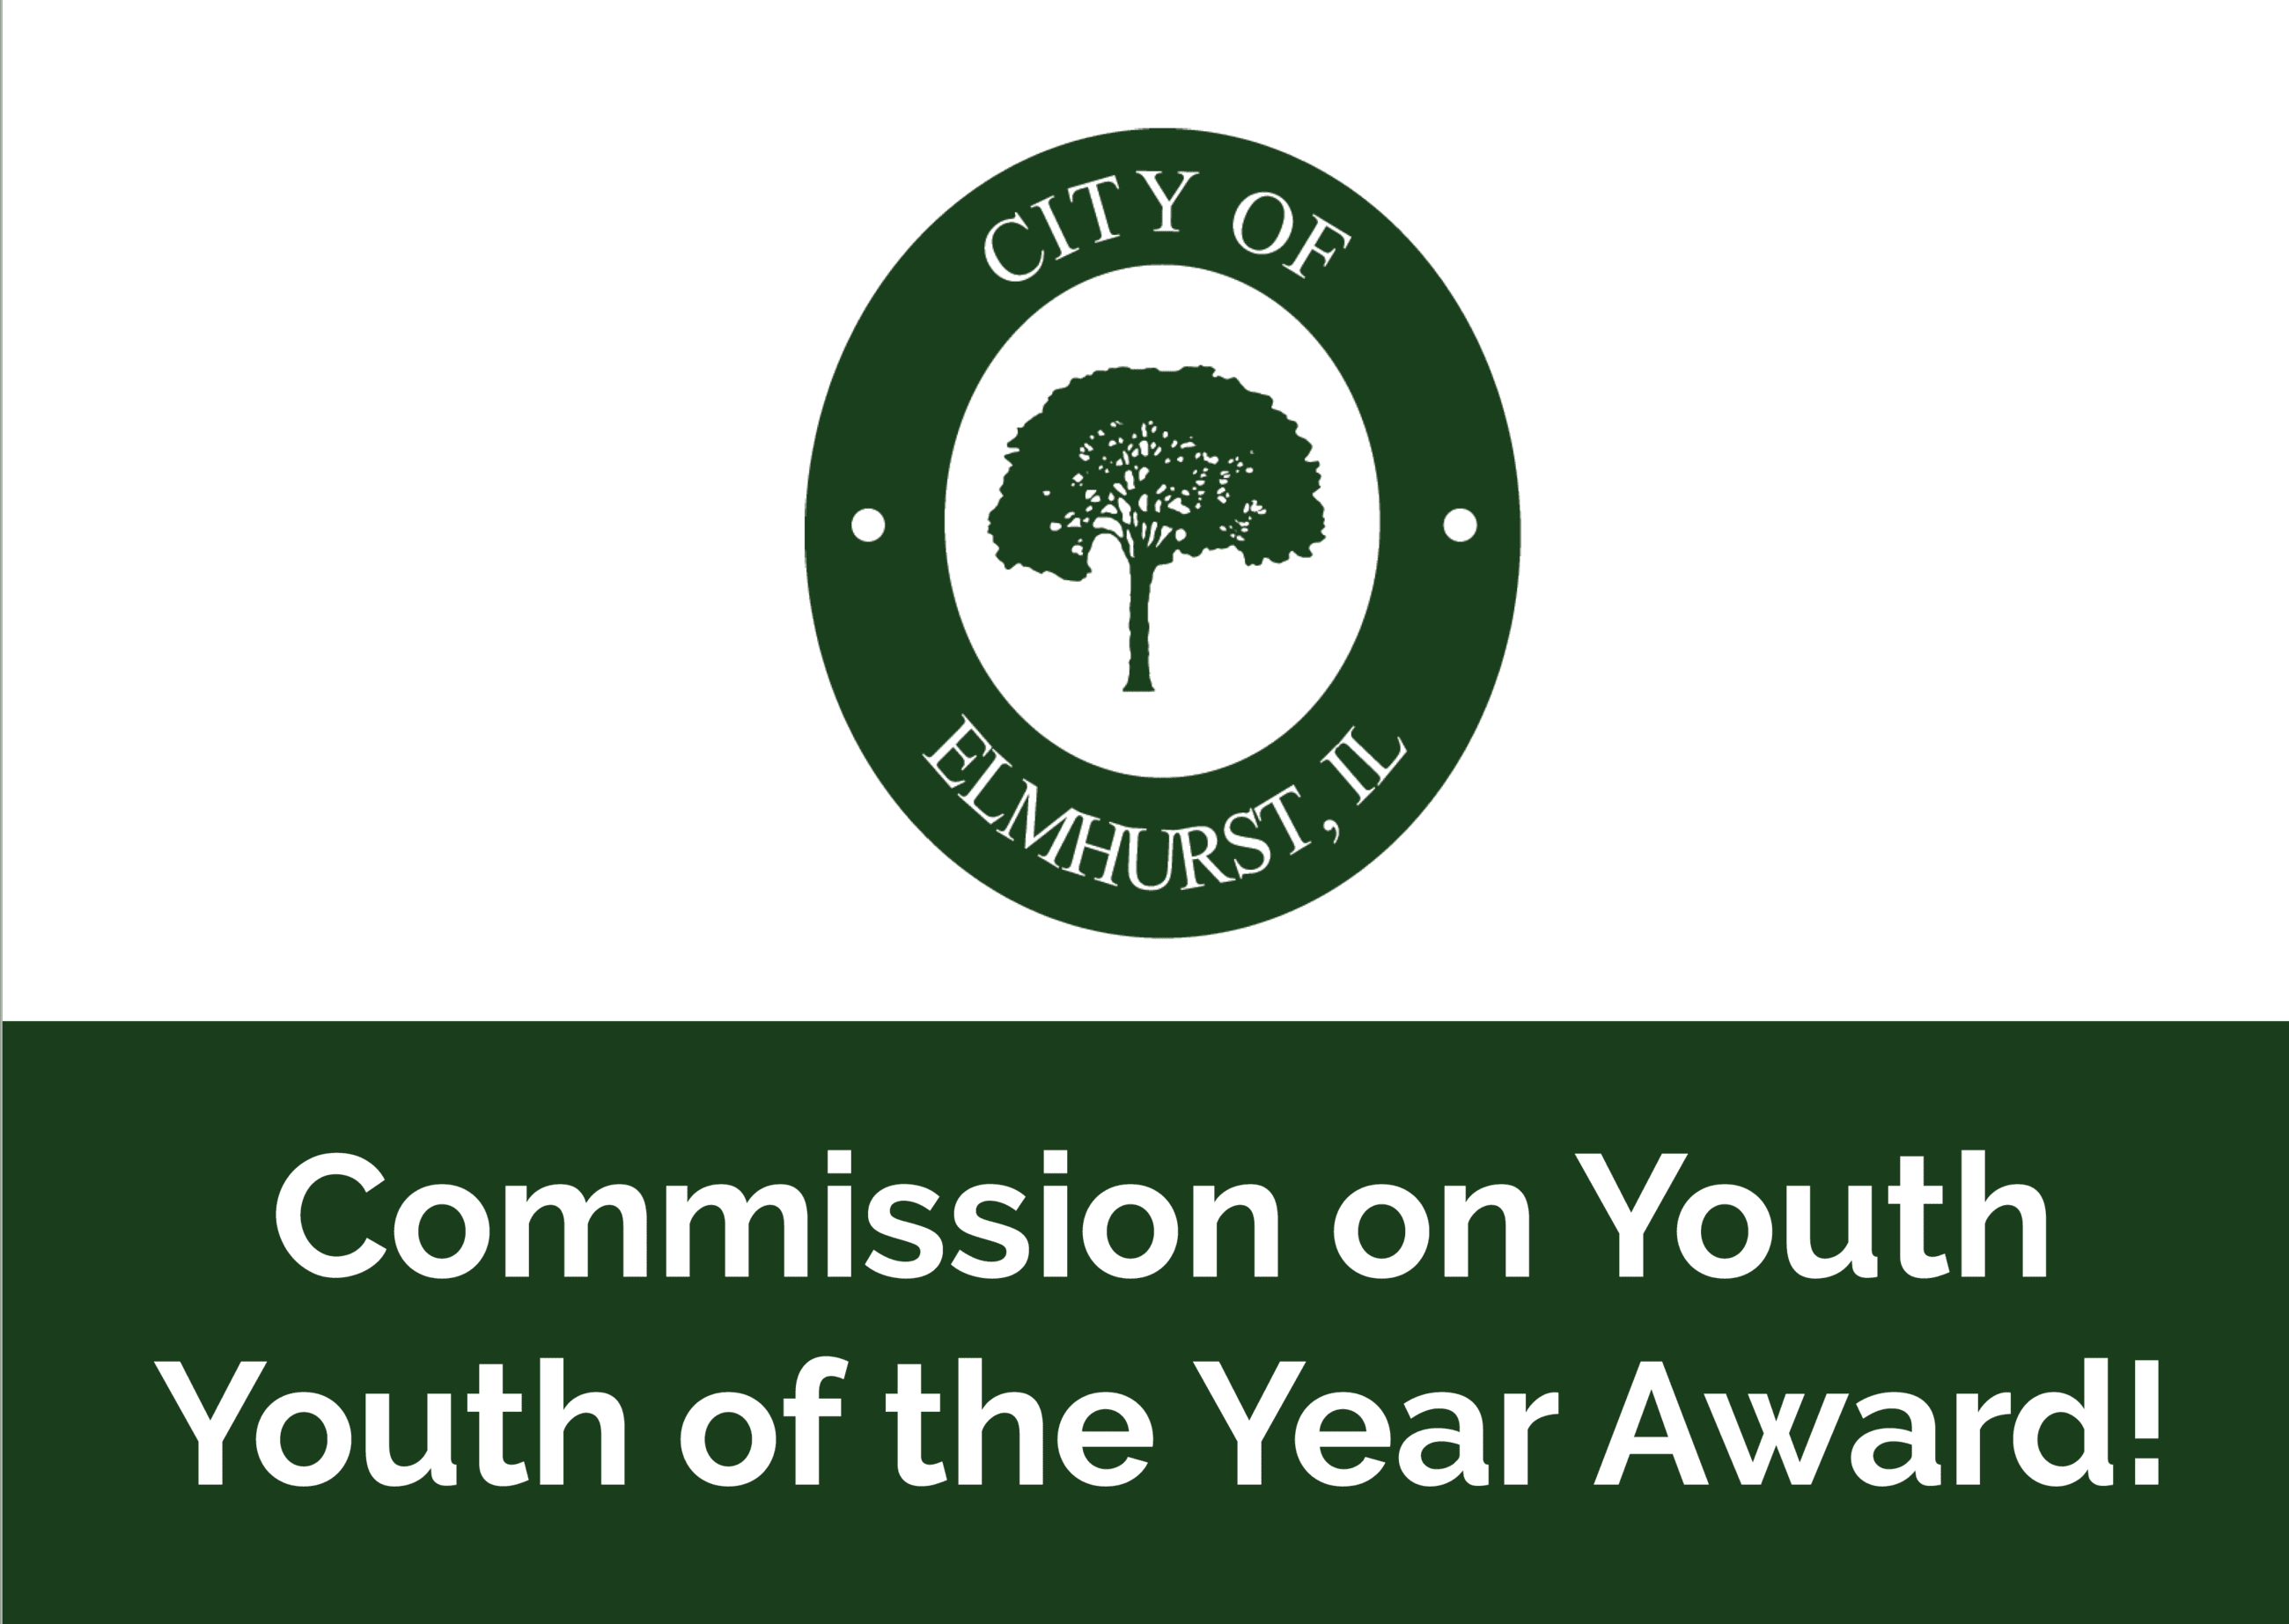 Youth of the year award